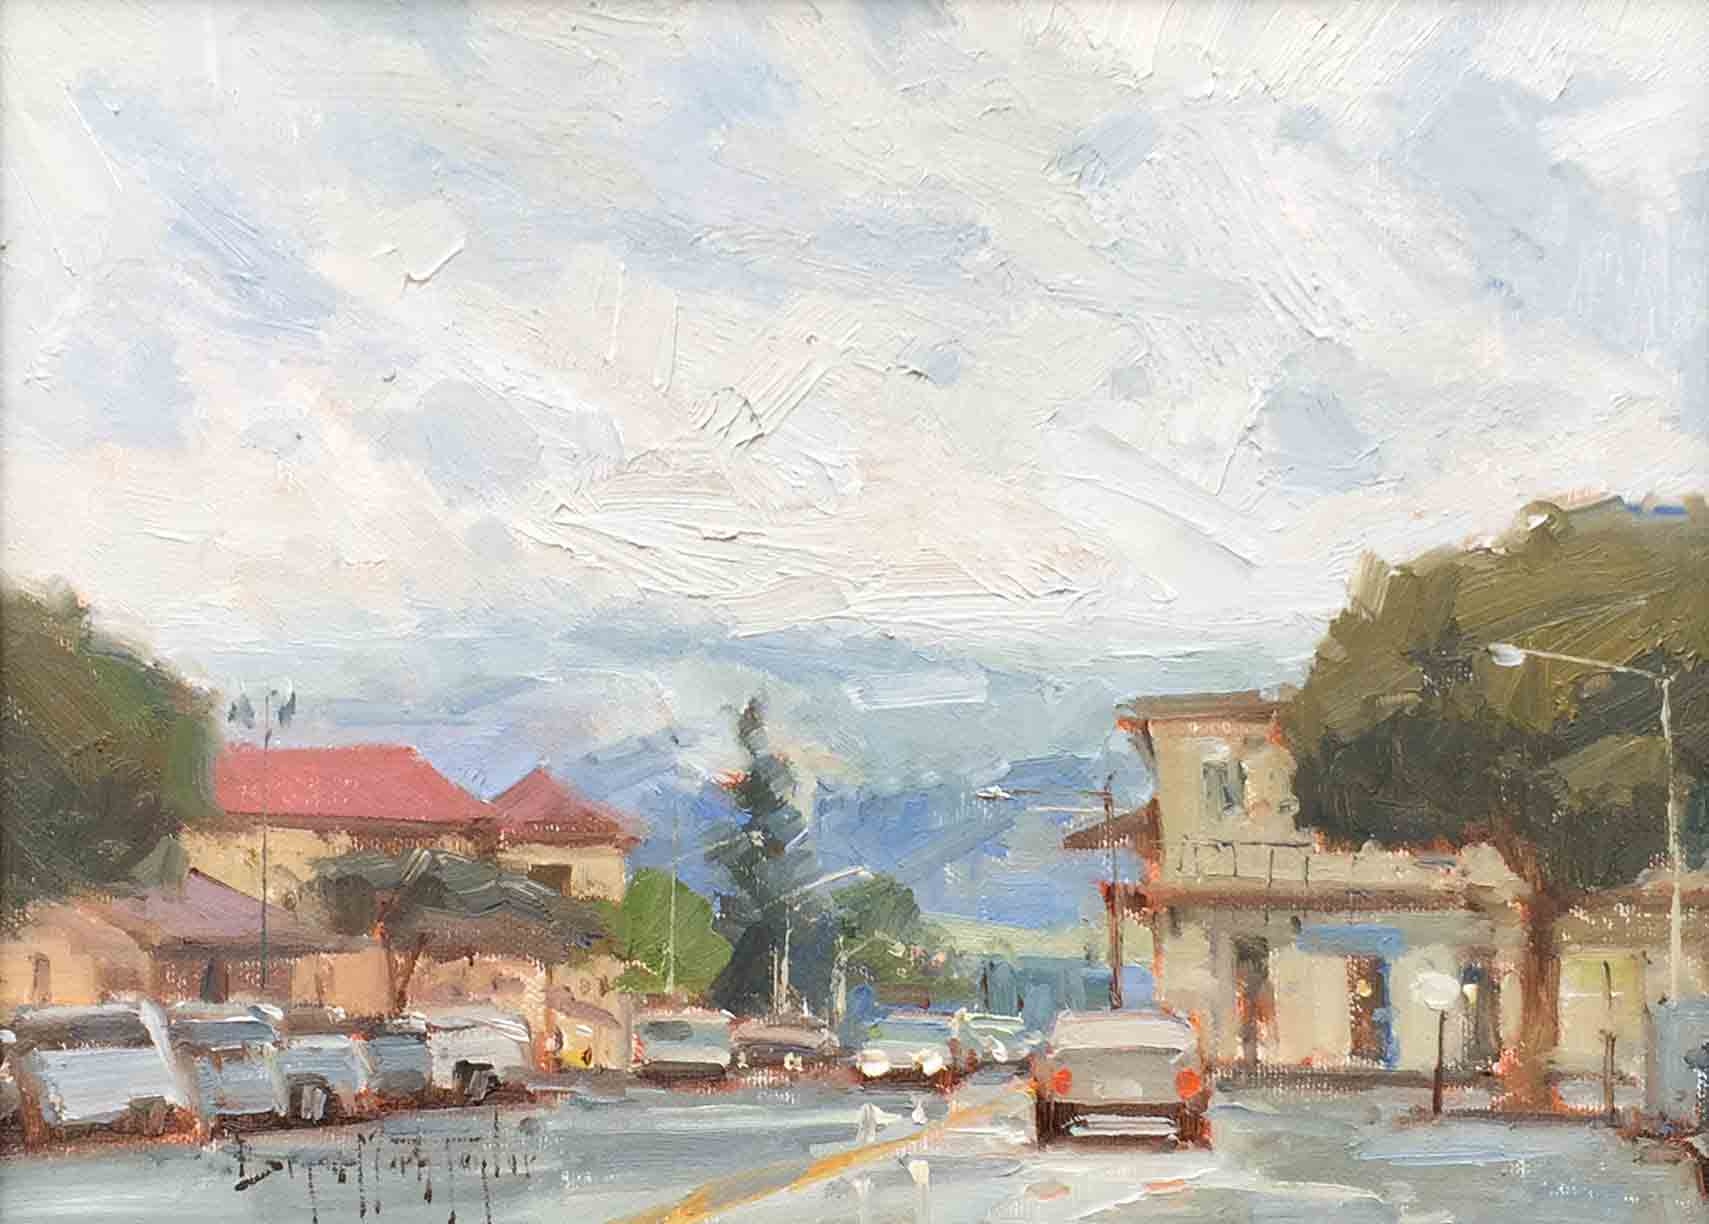 Bryan Mark Taylor, Sonoma In The Rain, 2010